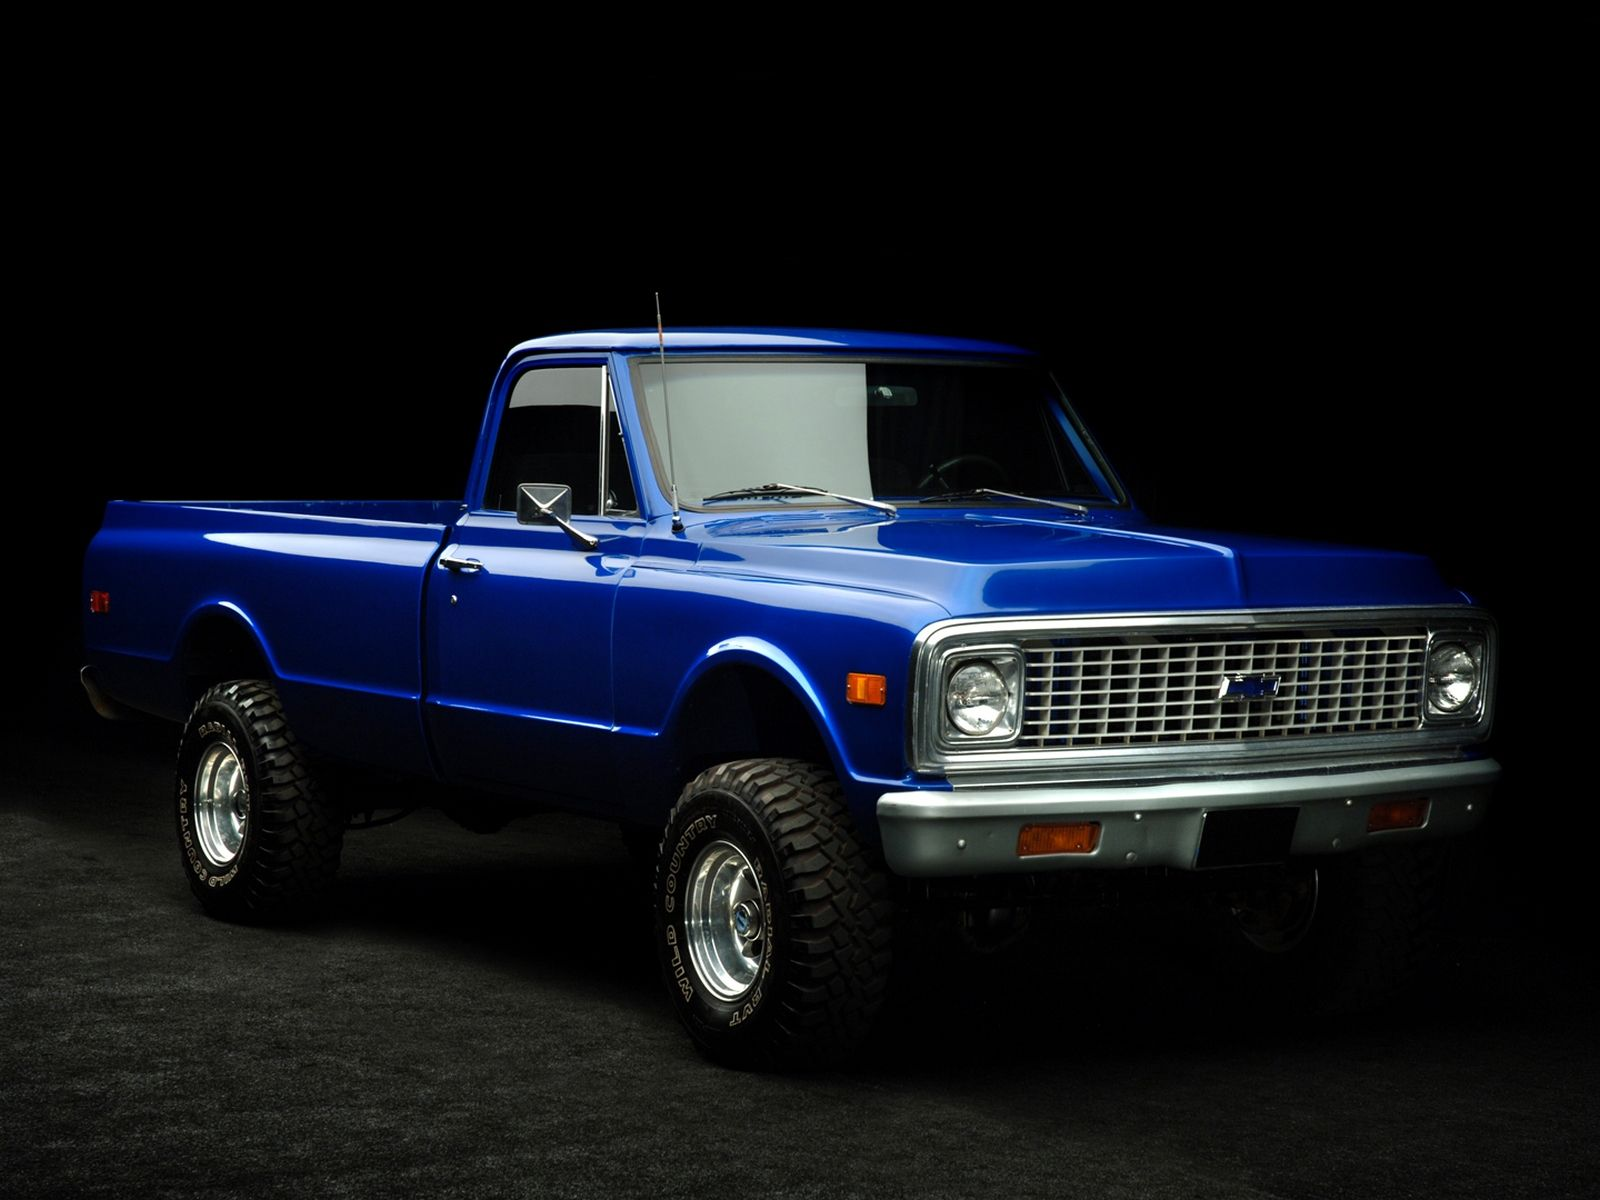 Chevrolet 1500 pickup my dream truck